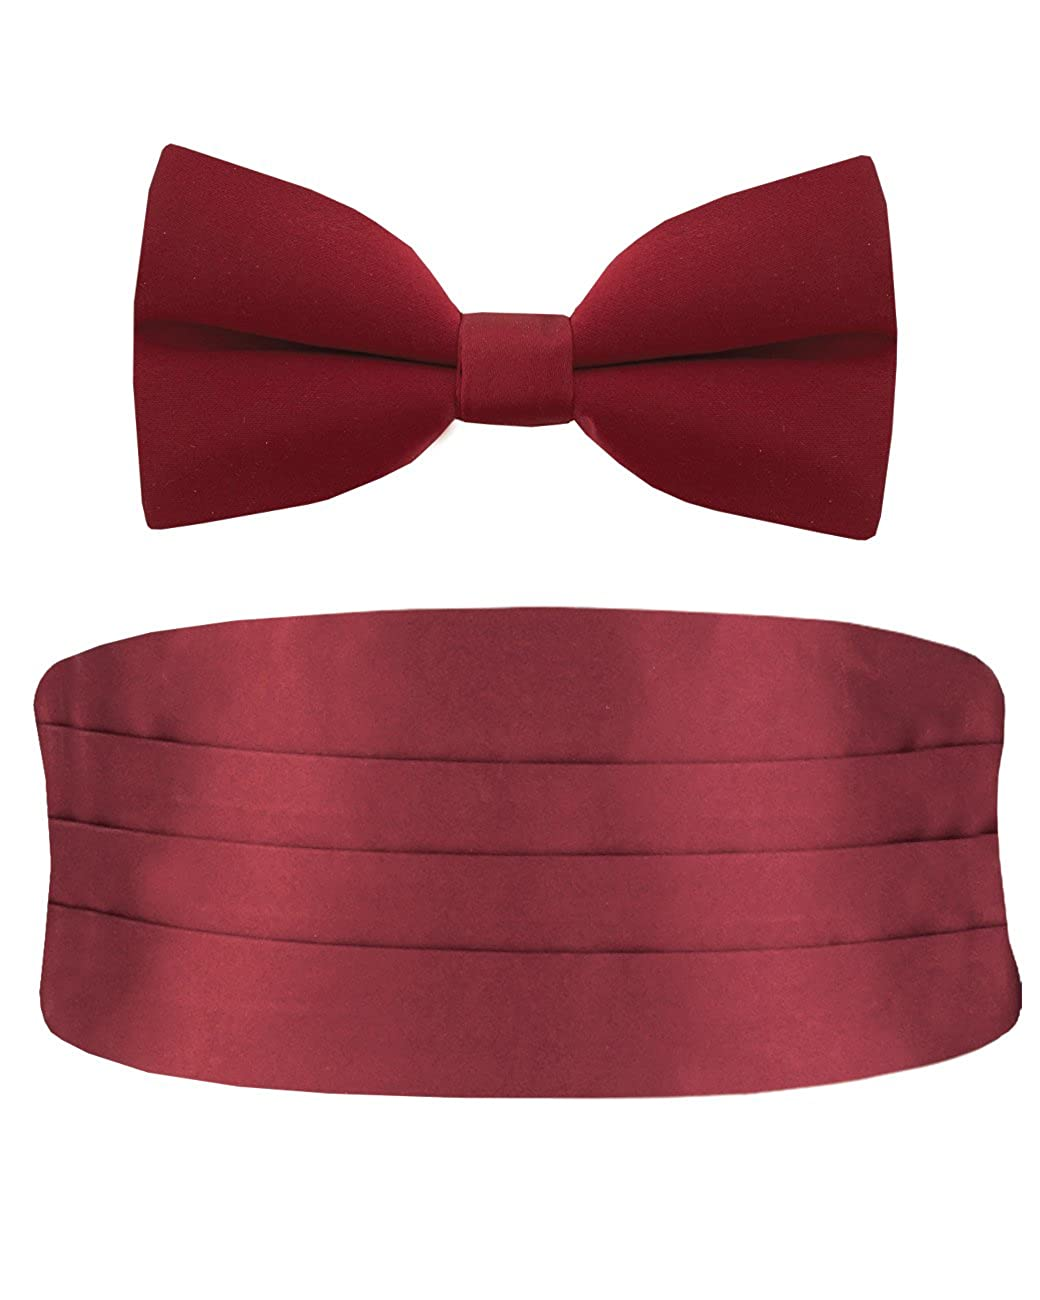 Dobell Clothing Mens Polyester Burgundy Cummerbund Pre-Tied Bow Tie Set GSCBM04DP200R